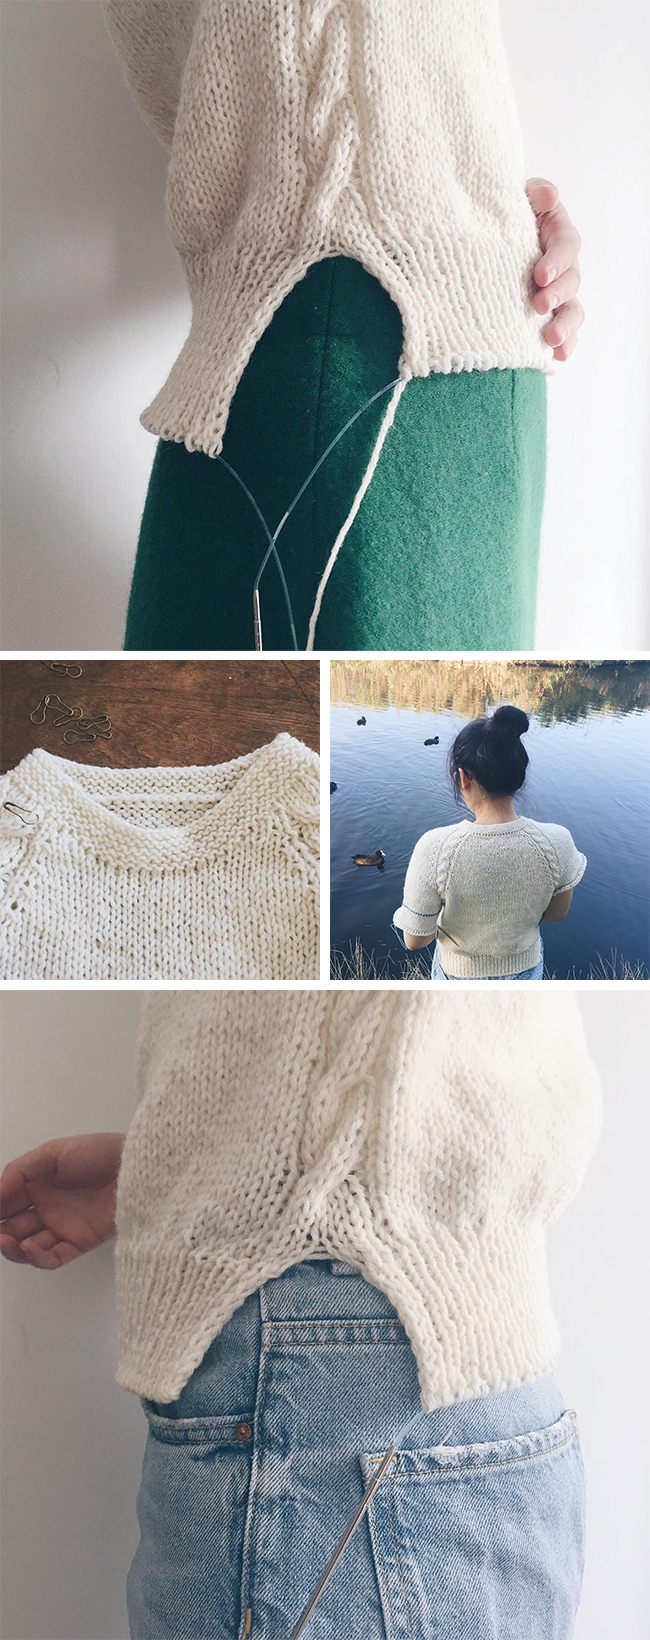 WIPs of the Week No.4: Ding and Sari